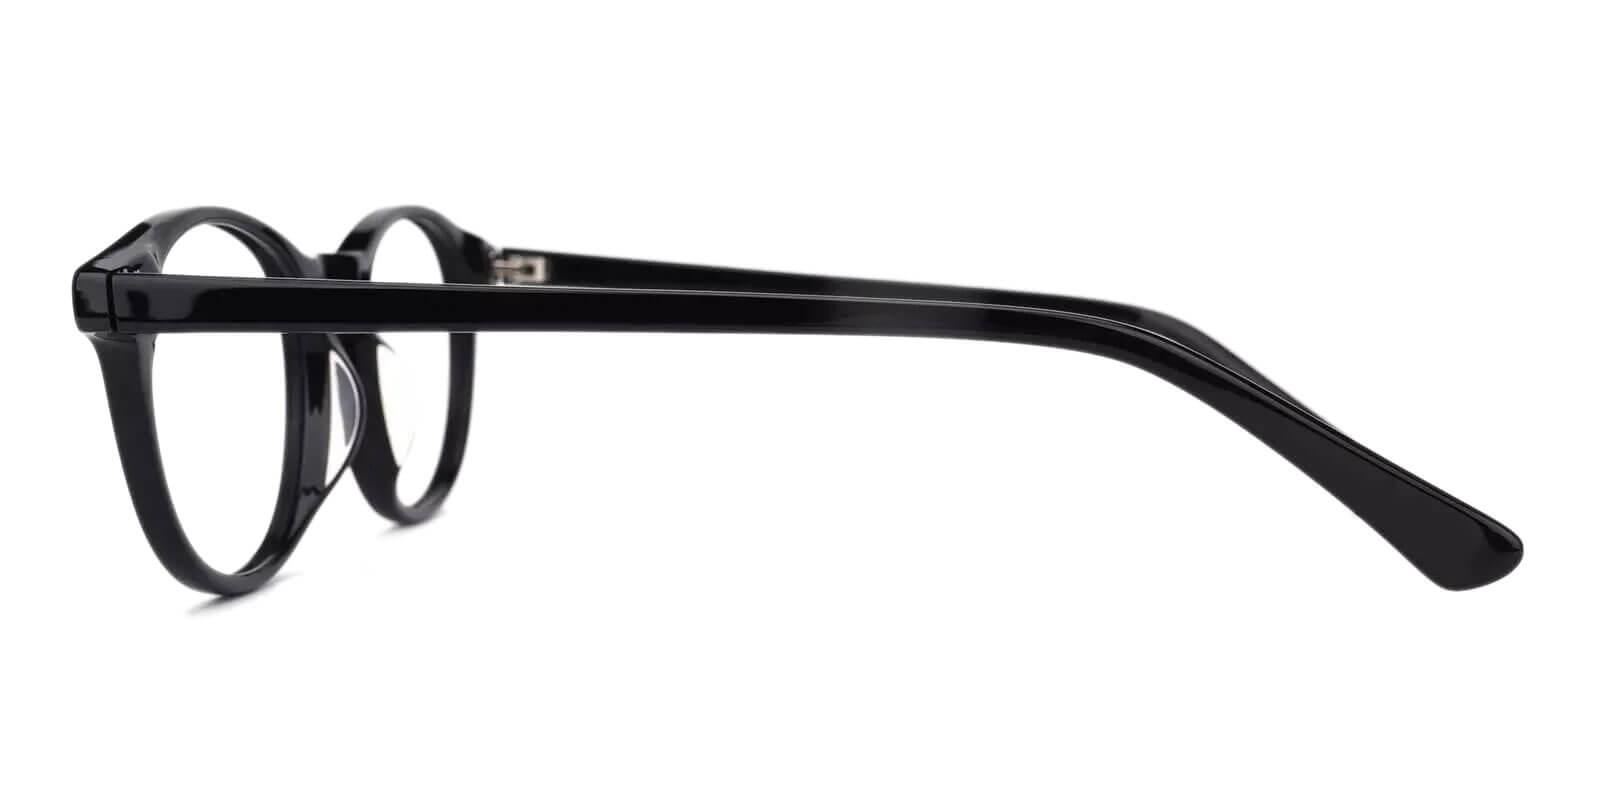 Holly Grove Black Acetate Eyeglasses , UniversalBridgeFit Frames from ABBE Glasses